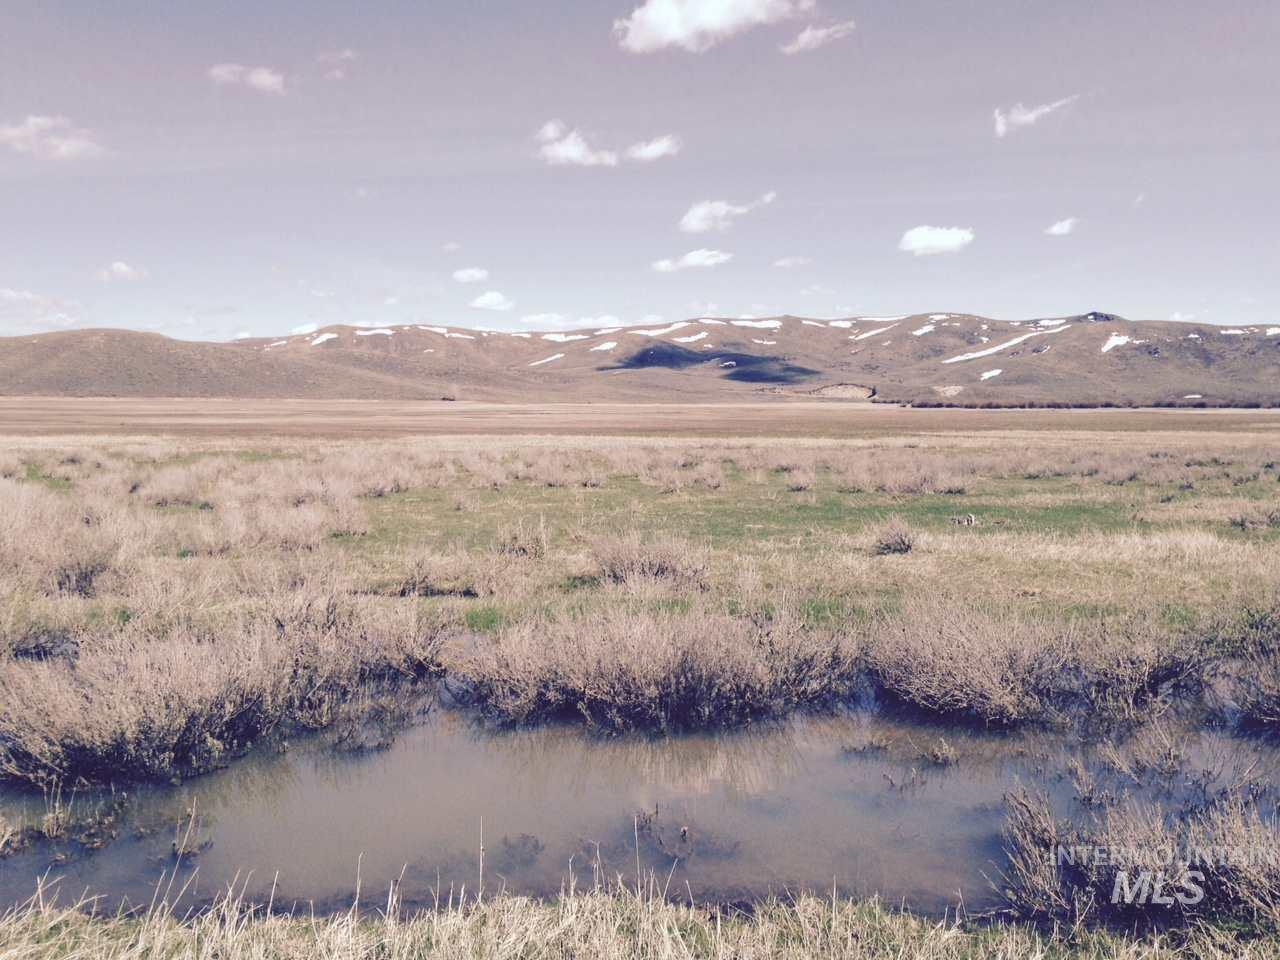 TBD N LITTLE CAMAS RESERVOIR ROAD, Mountain Home, Idaho 83647, Land For Sale, Price $50,000, 98731079